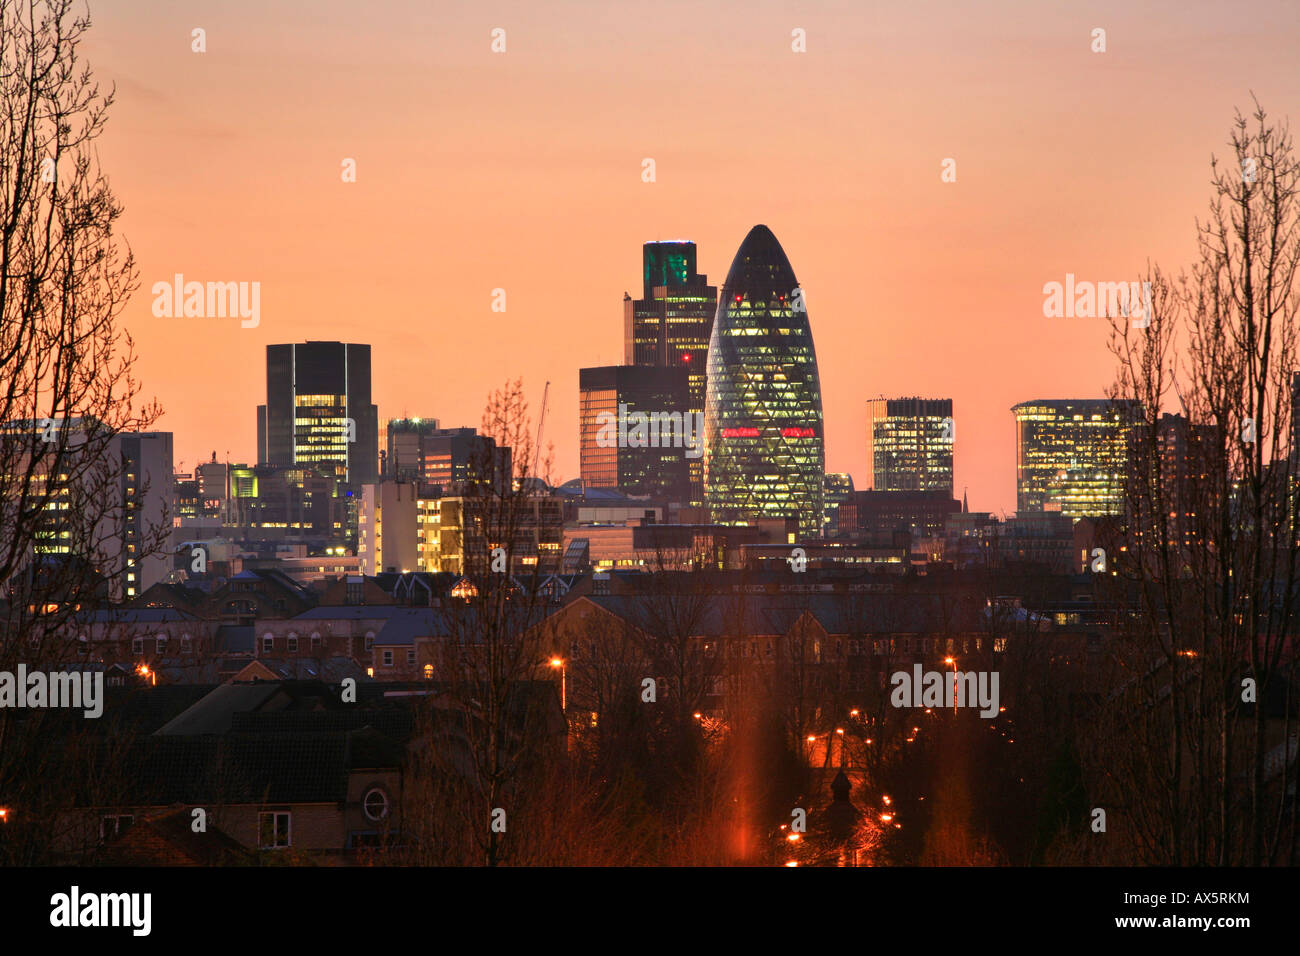 City of London skyscrapers with Swiss Re Tower as seen from Docklands Hill, Canada Waters, Docklands, London, England, - Stock Image